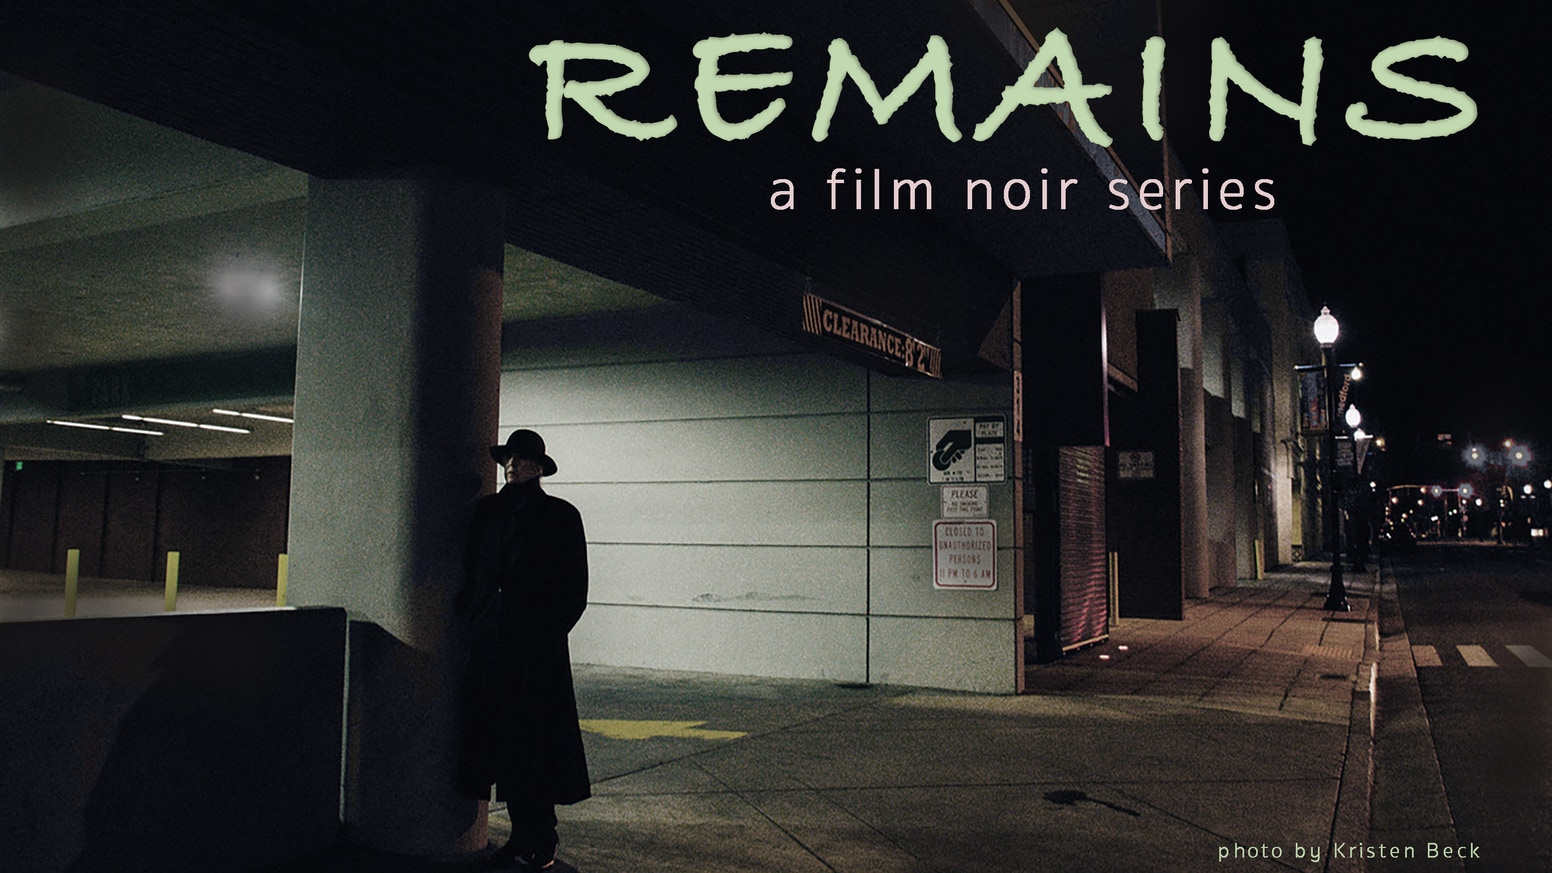 REMAINS the film noir series by Ray Nomoto Robison » We said